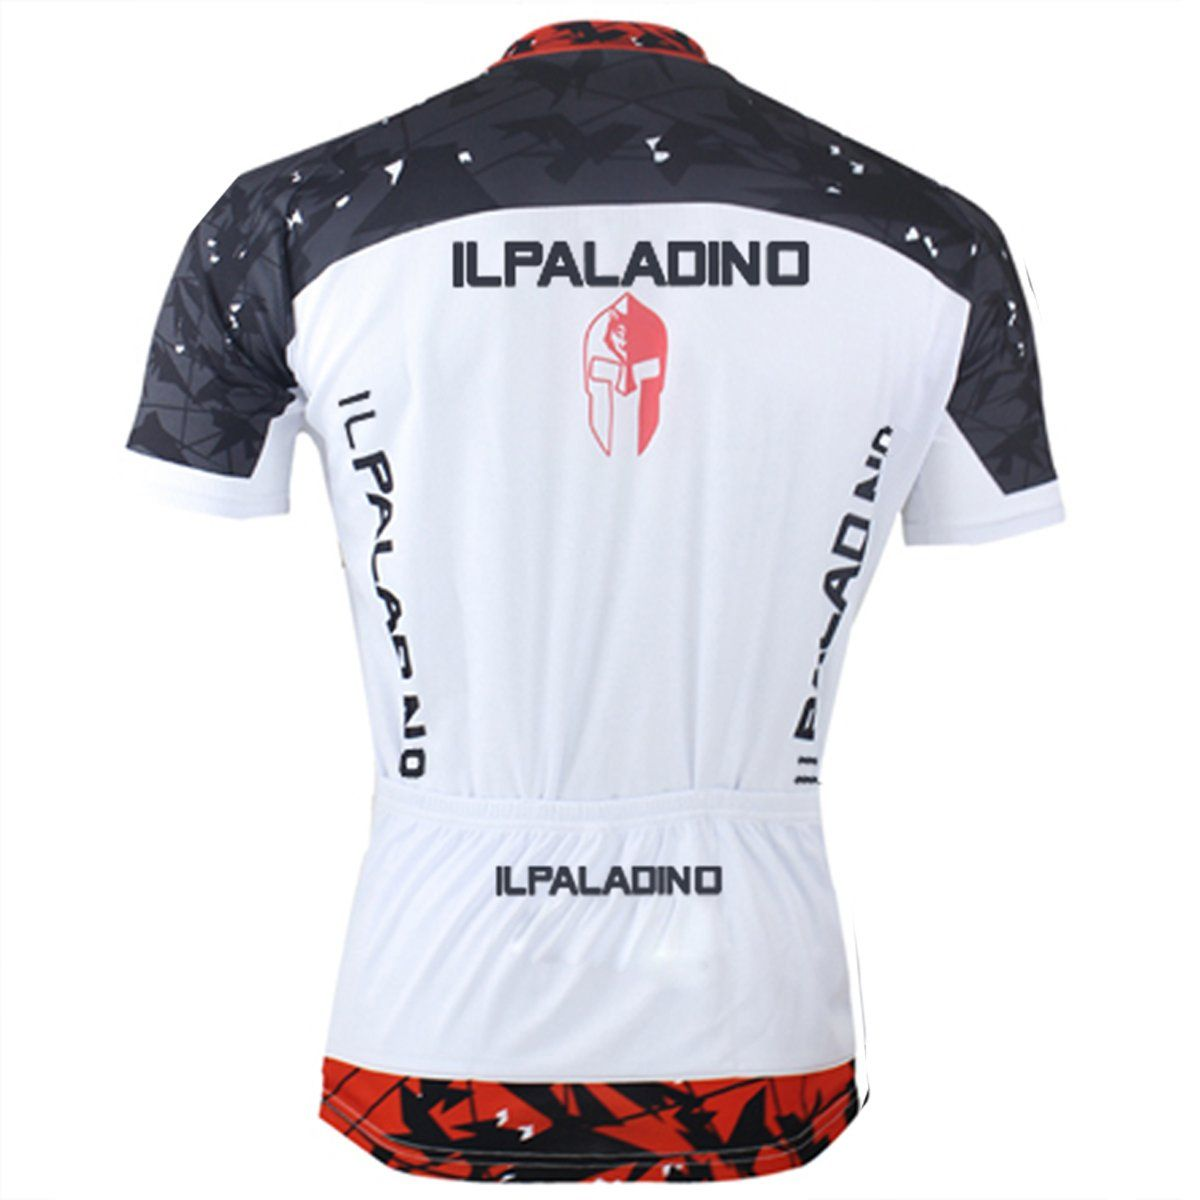 a1daeea15 ILPALADINO Maple Leaf Man s Short-sleeve Cycling Jersey Team Jacket T-shirt  Summer Spring Autumn Clothes Sportswear Wing NO.006 - Cycling Apparel